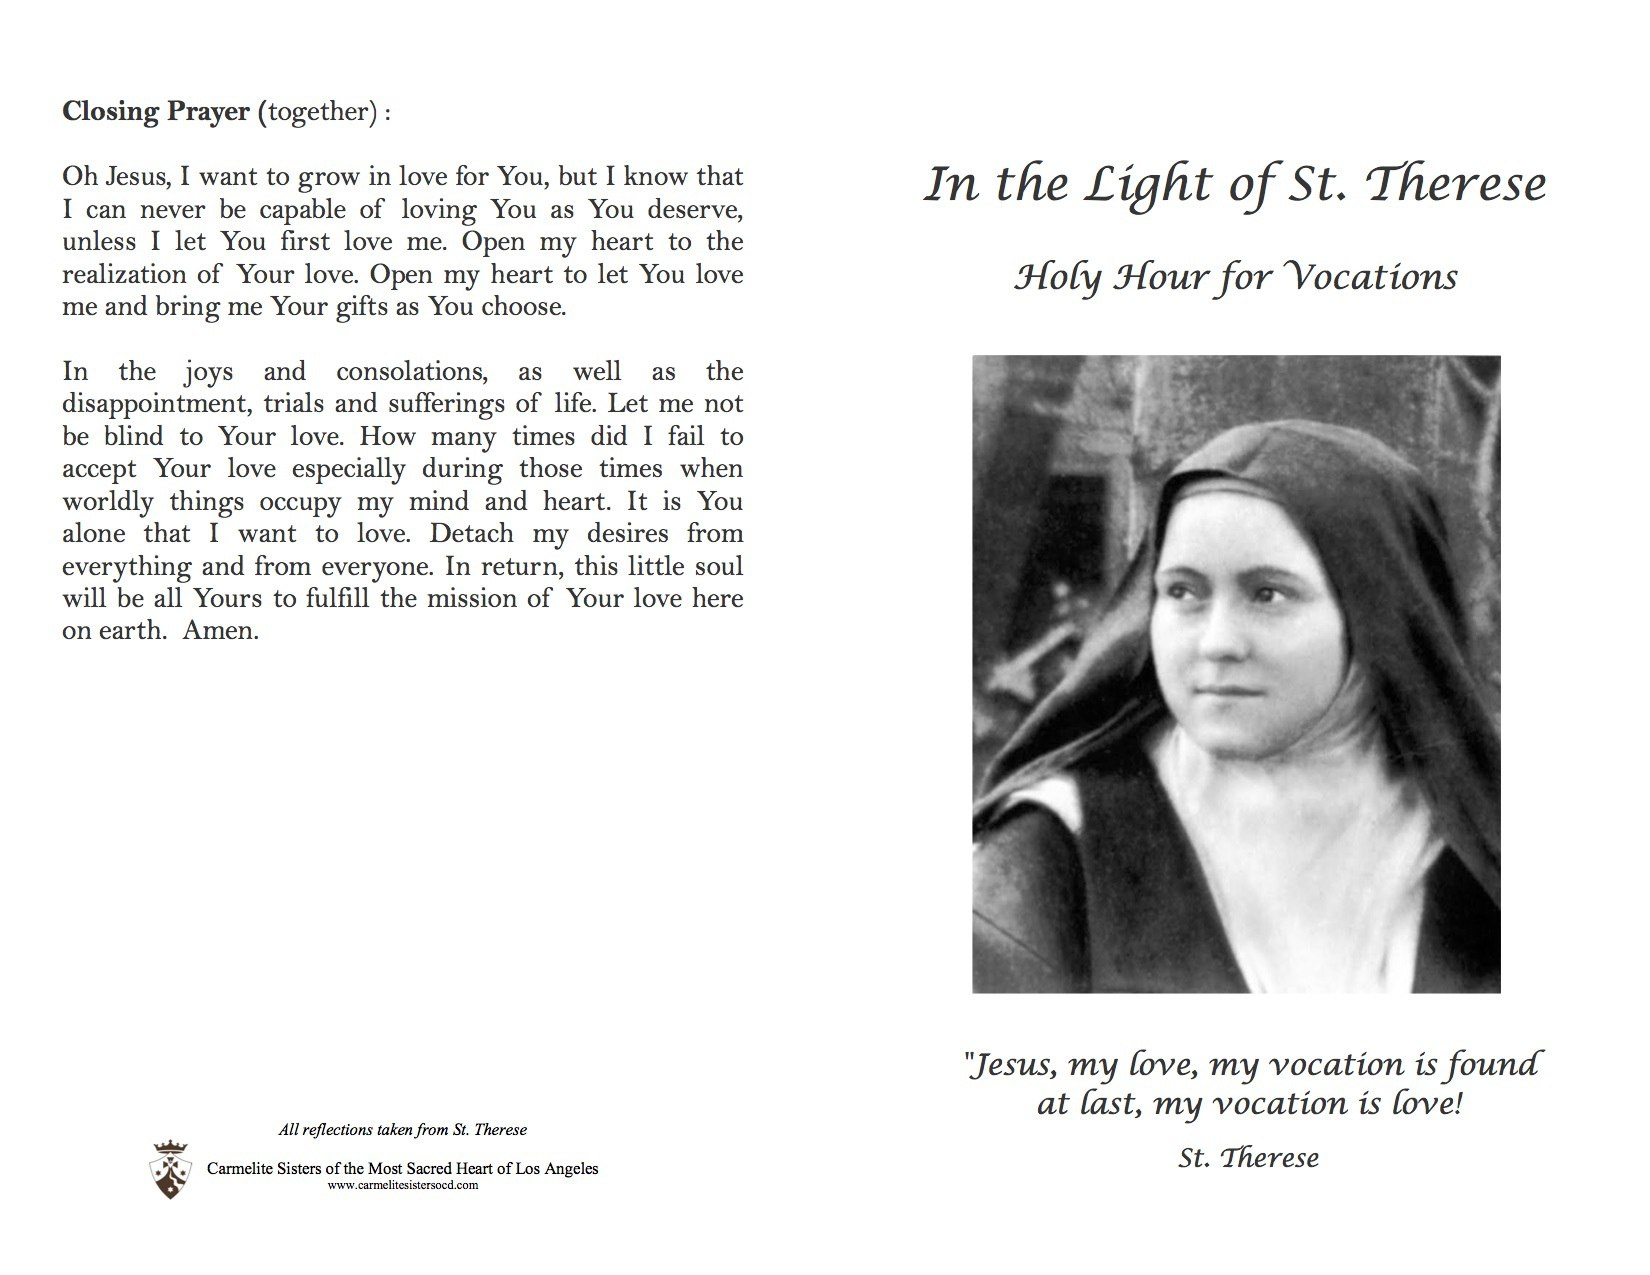 prayers for vocations carmelite sisters of the most sacred heart